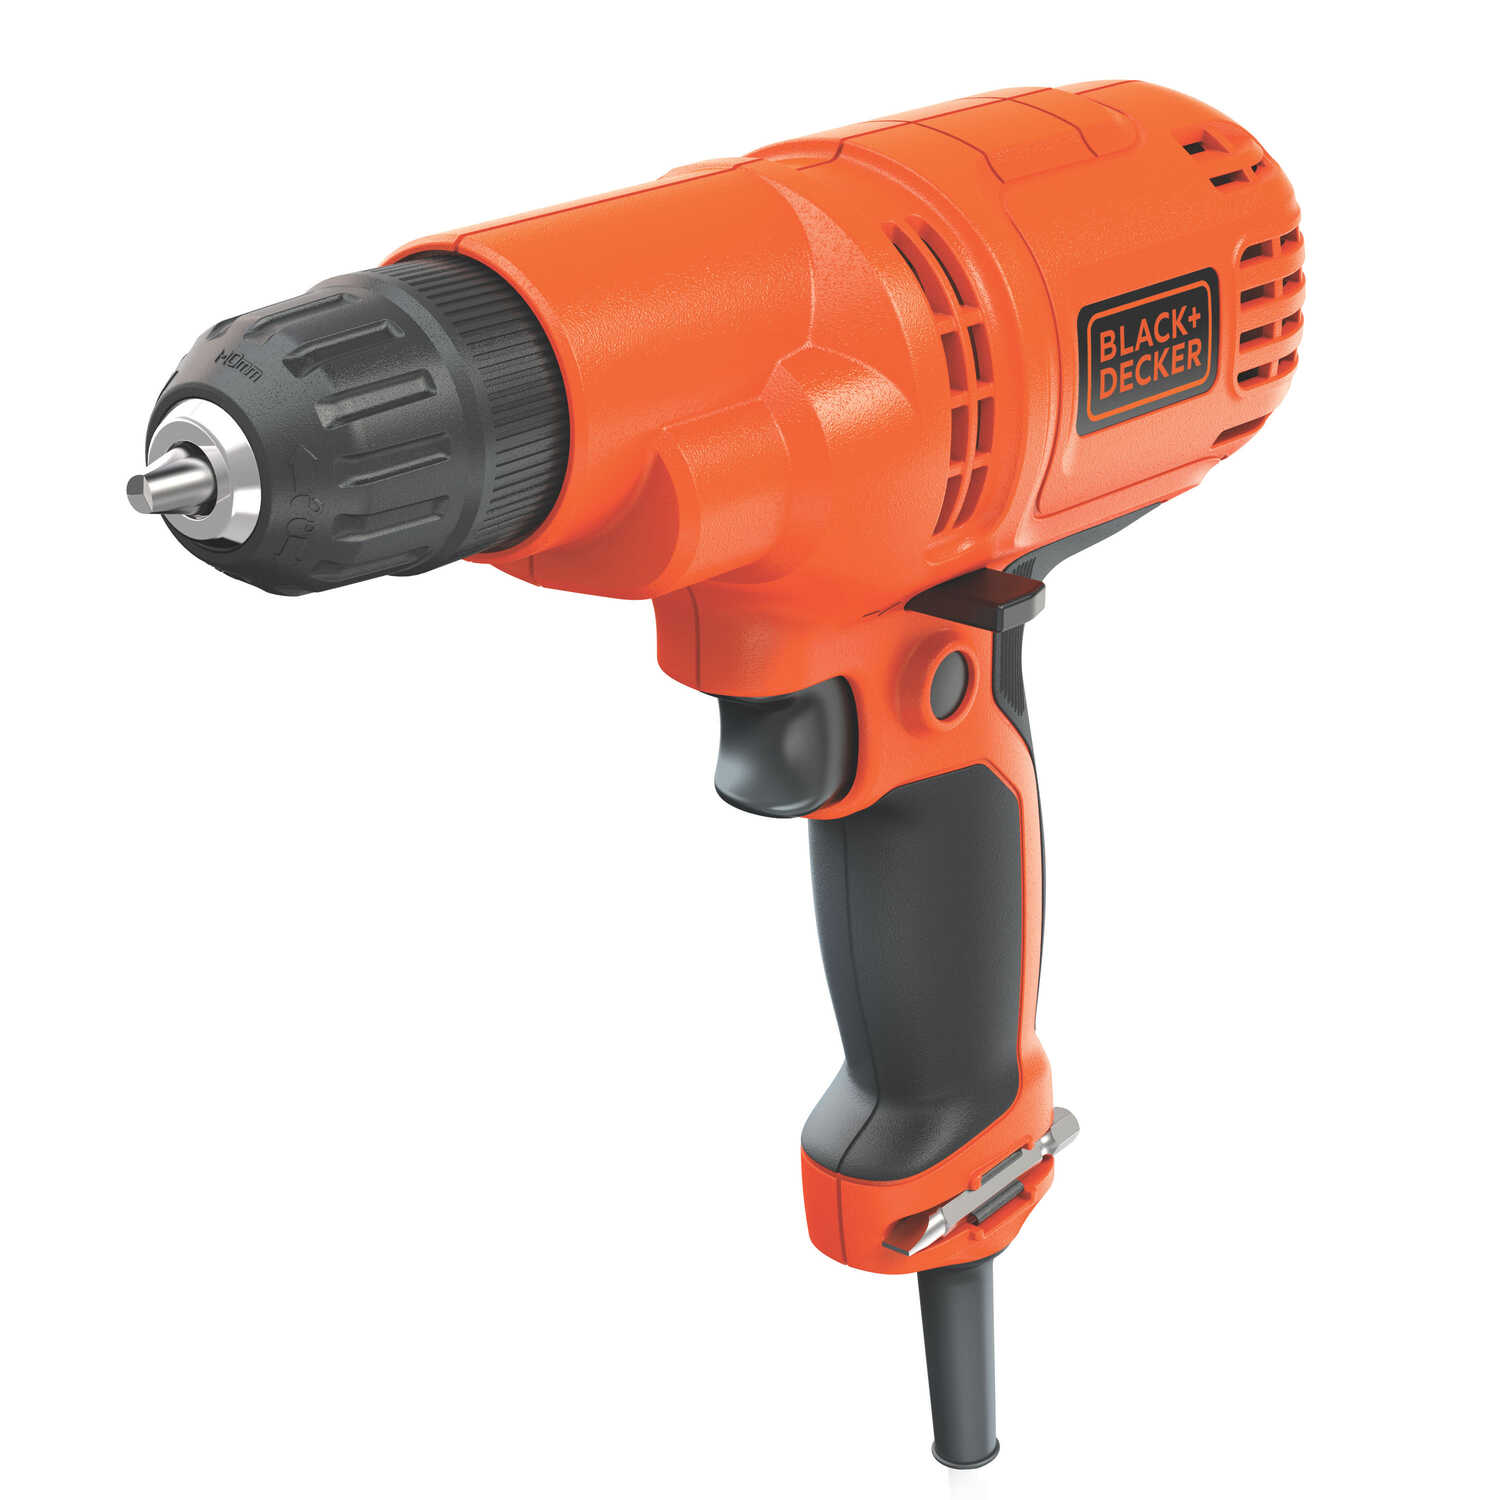 Black and Decker  3/8 in. Keyless  Corded Drill  5.2 amps 1500 rpm